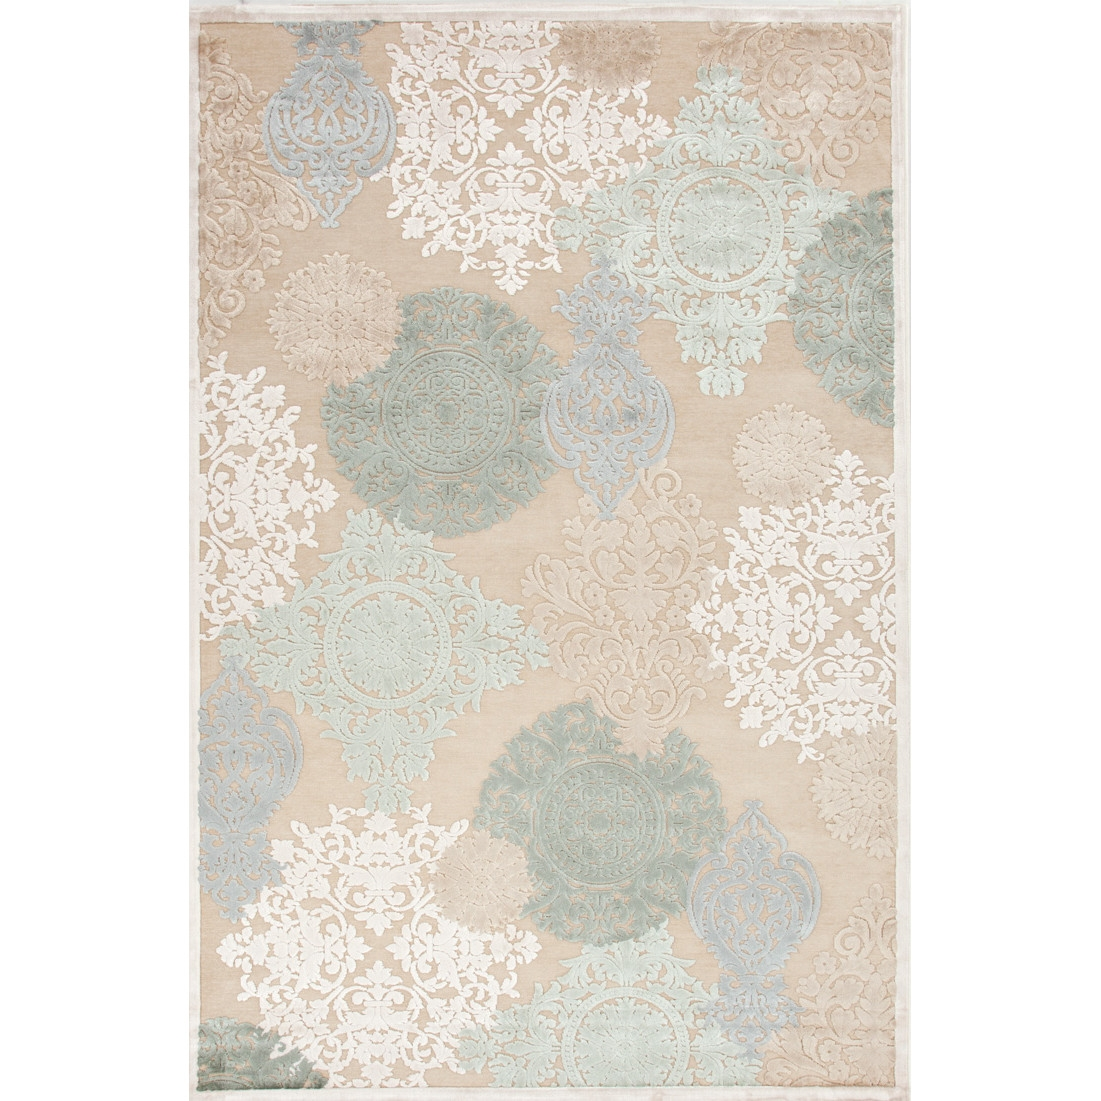 Blue Floral Area Rug Roselawnlutheran With Regard To Light Blue And Cream Rugs (Image 3 of 15)